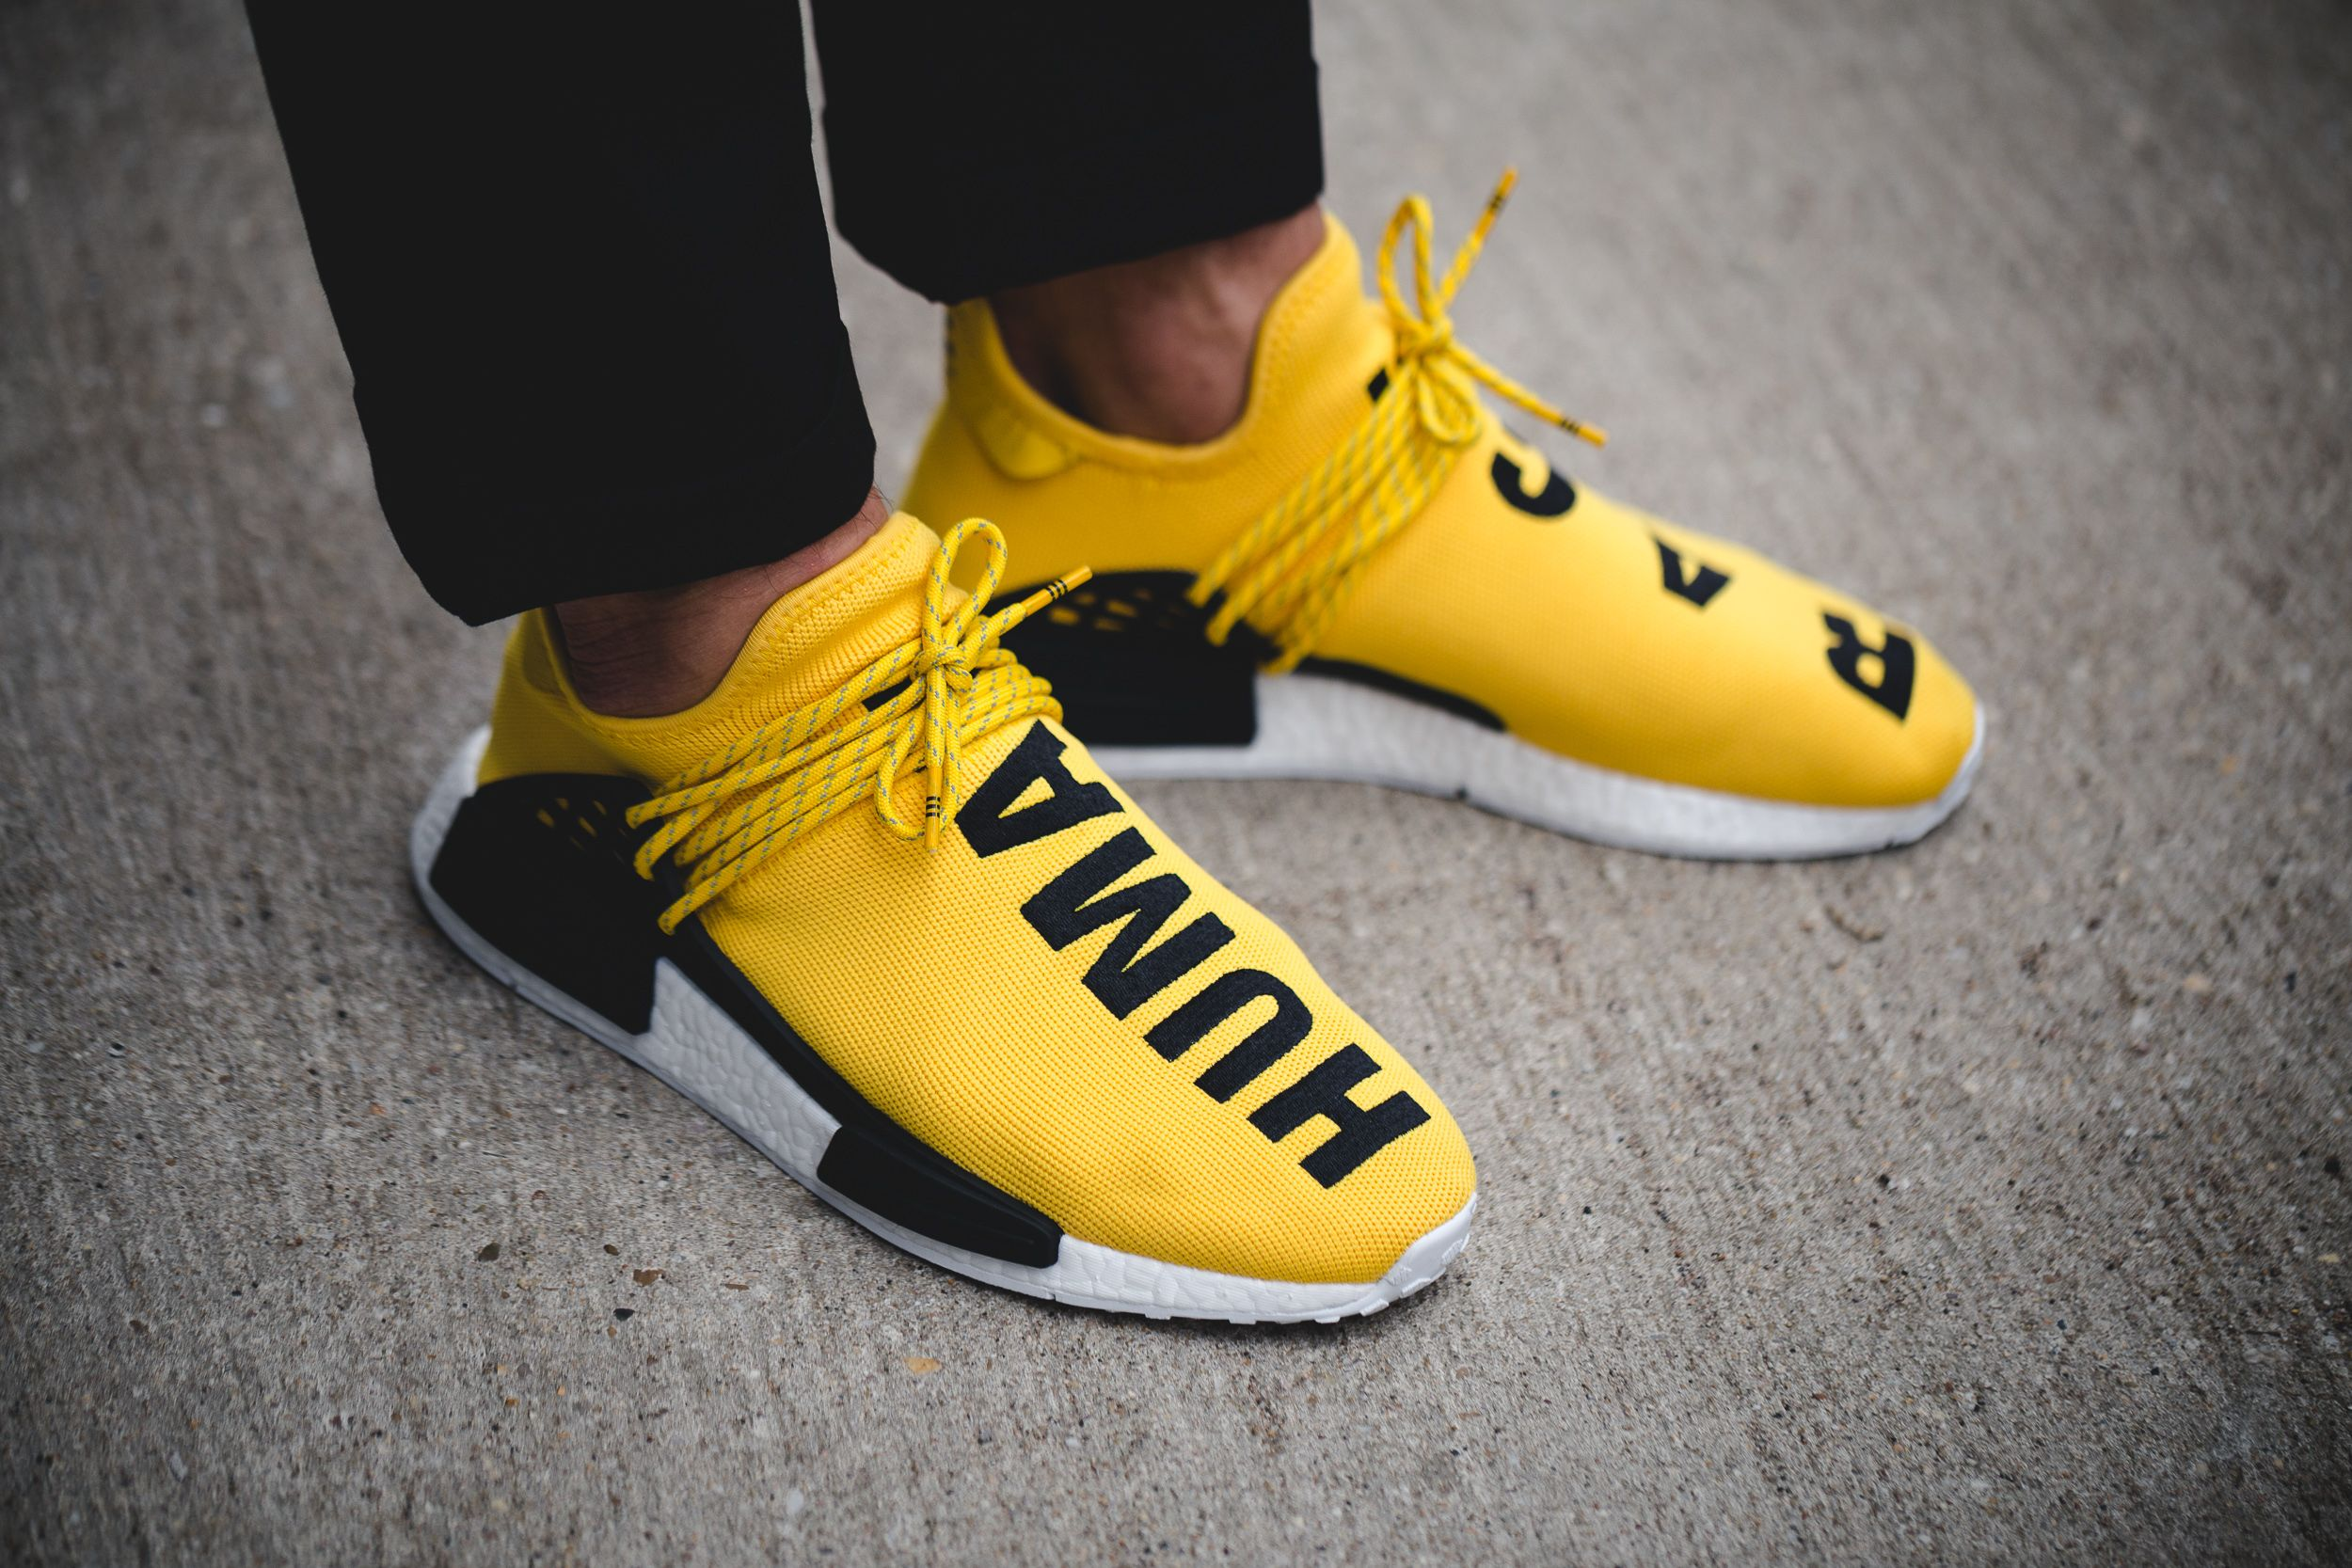 reputable site ea731 e301e Pharrell Williams x adidas NMD 'Human Race' Releases 22.07 ...